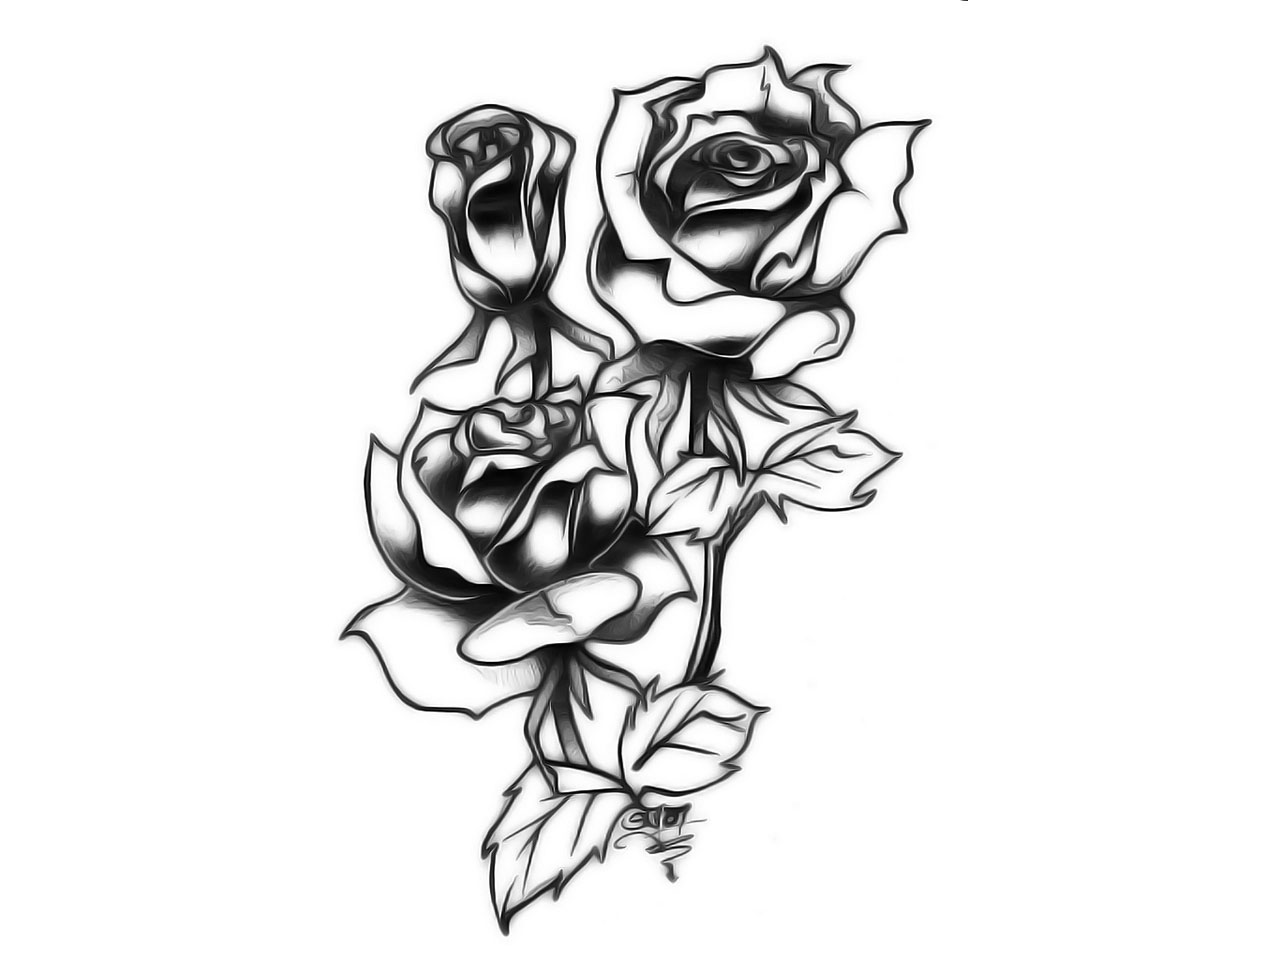 1280x960 Gaeroladid White Rose Tattoo Drawing Images